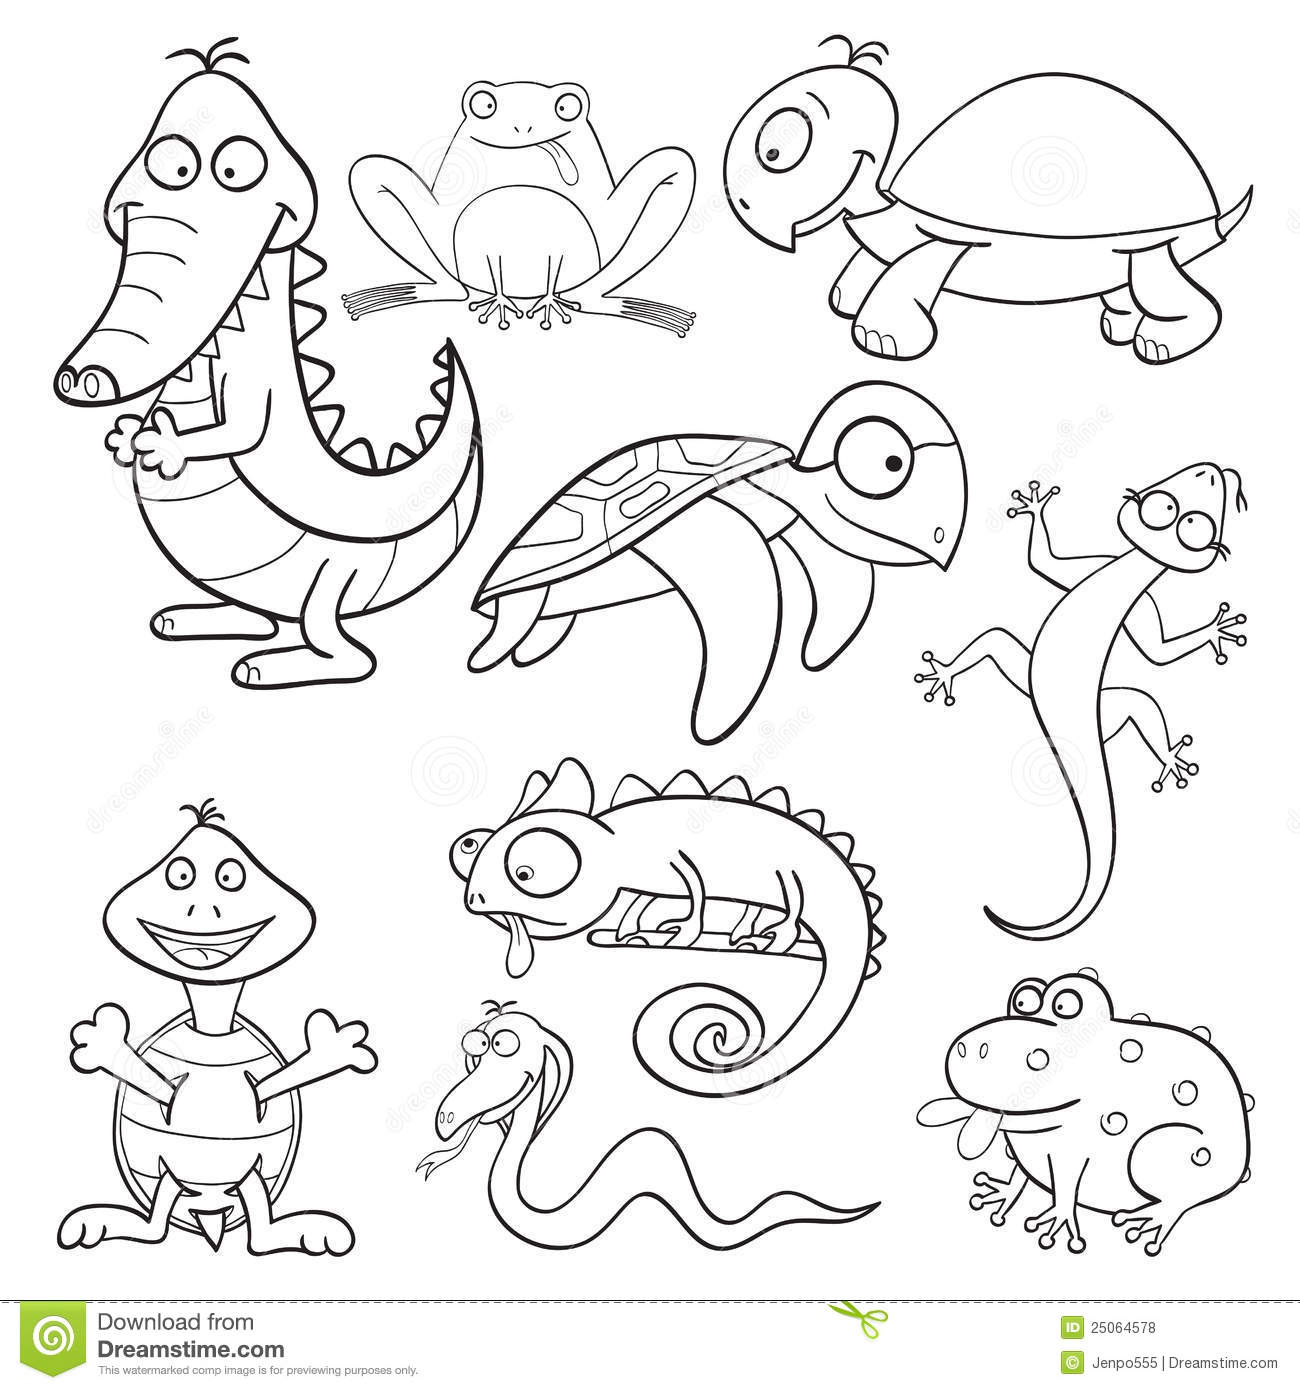 Coloring Book With Reptiles And Amphibians Royalty Free